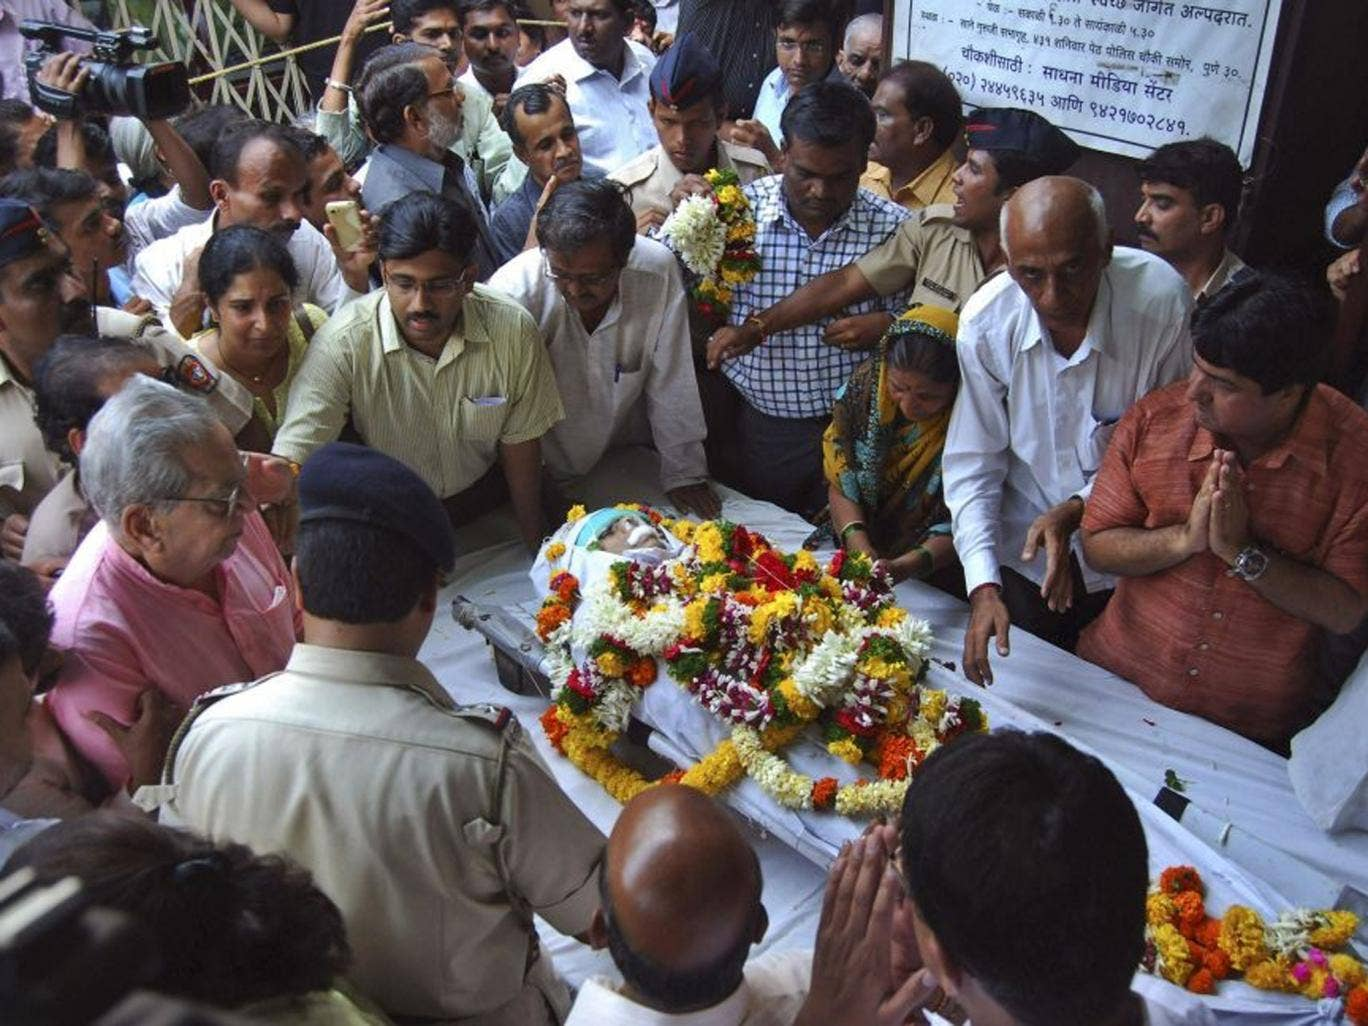 Narendra Dabholkar received threats for his work against mysticism and spirituality. Mourners pay last respects to the anti-superstition activist who was killed in Pune